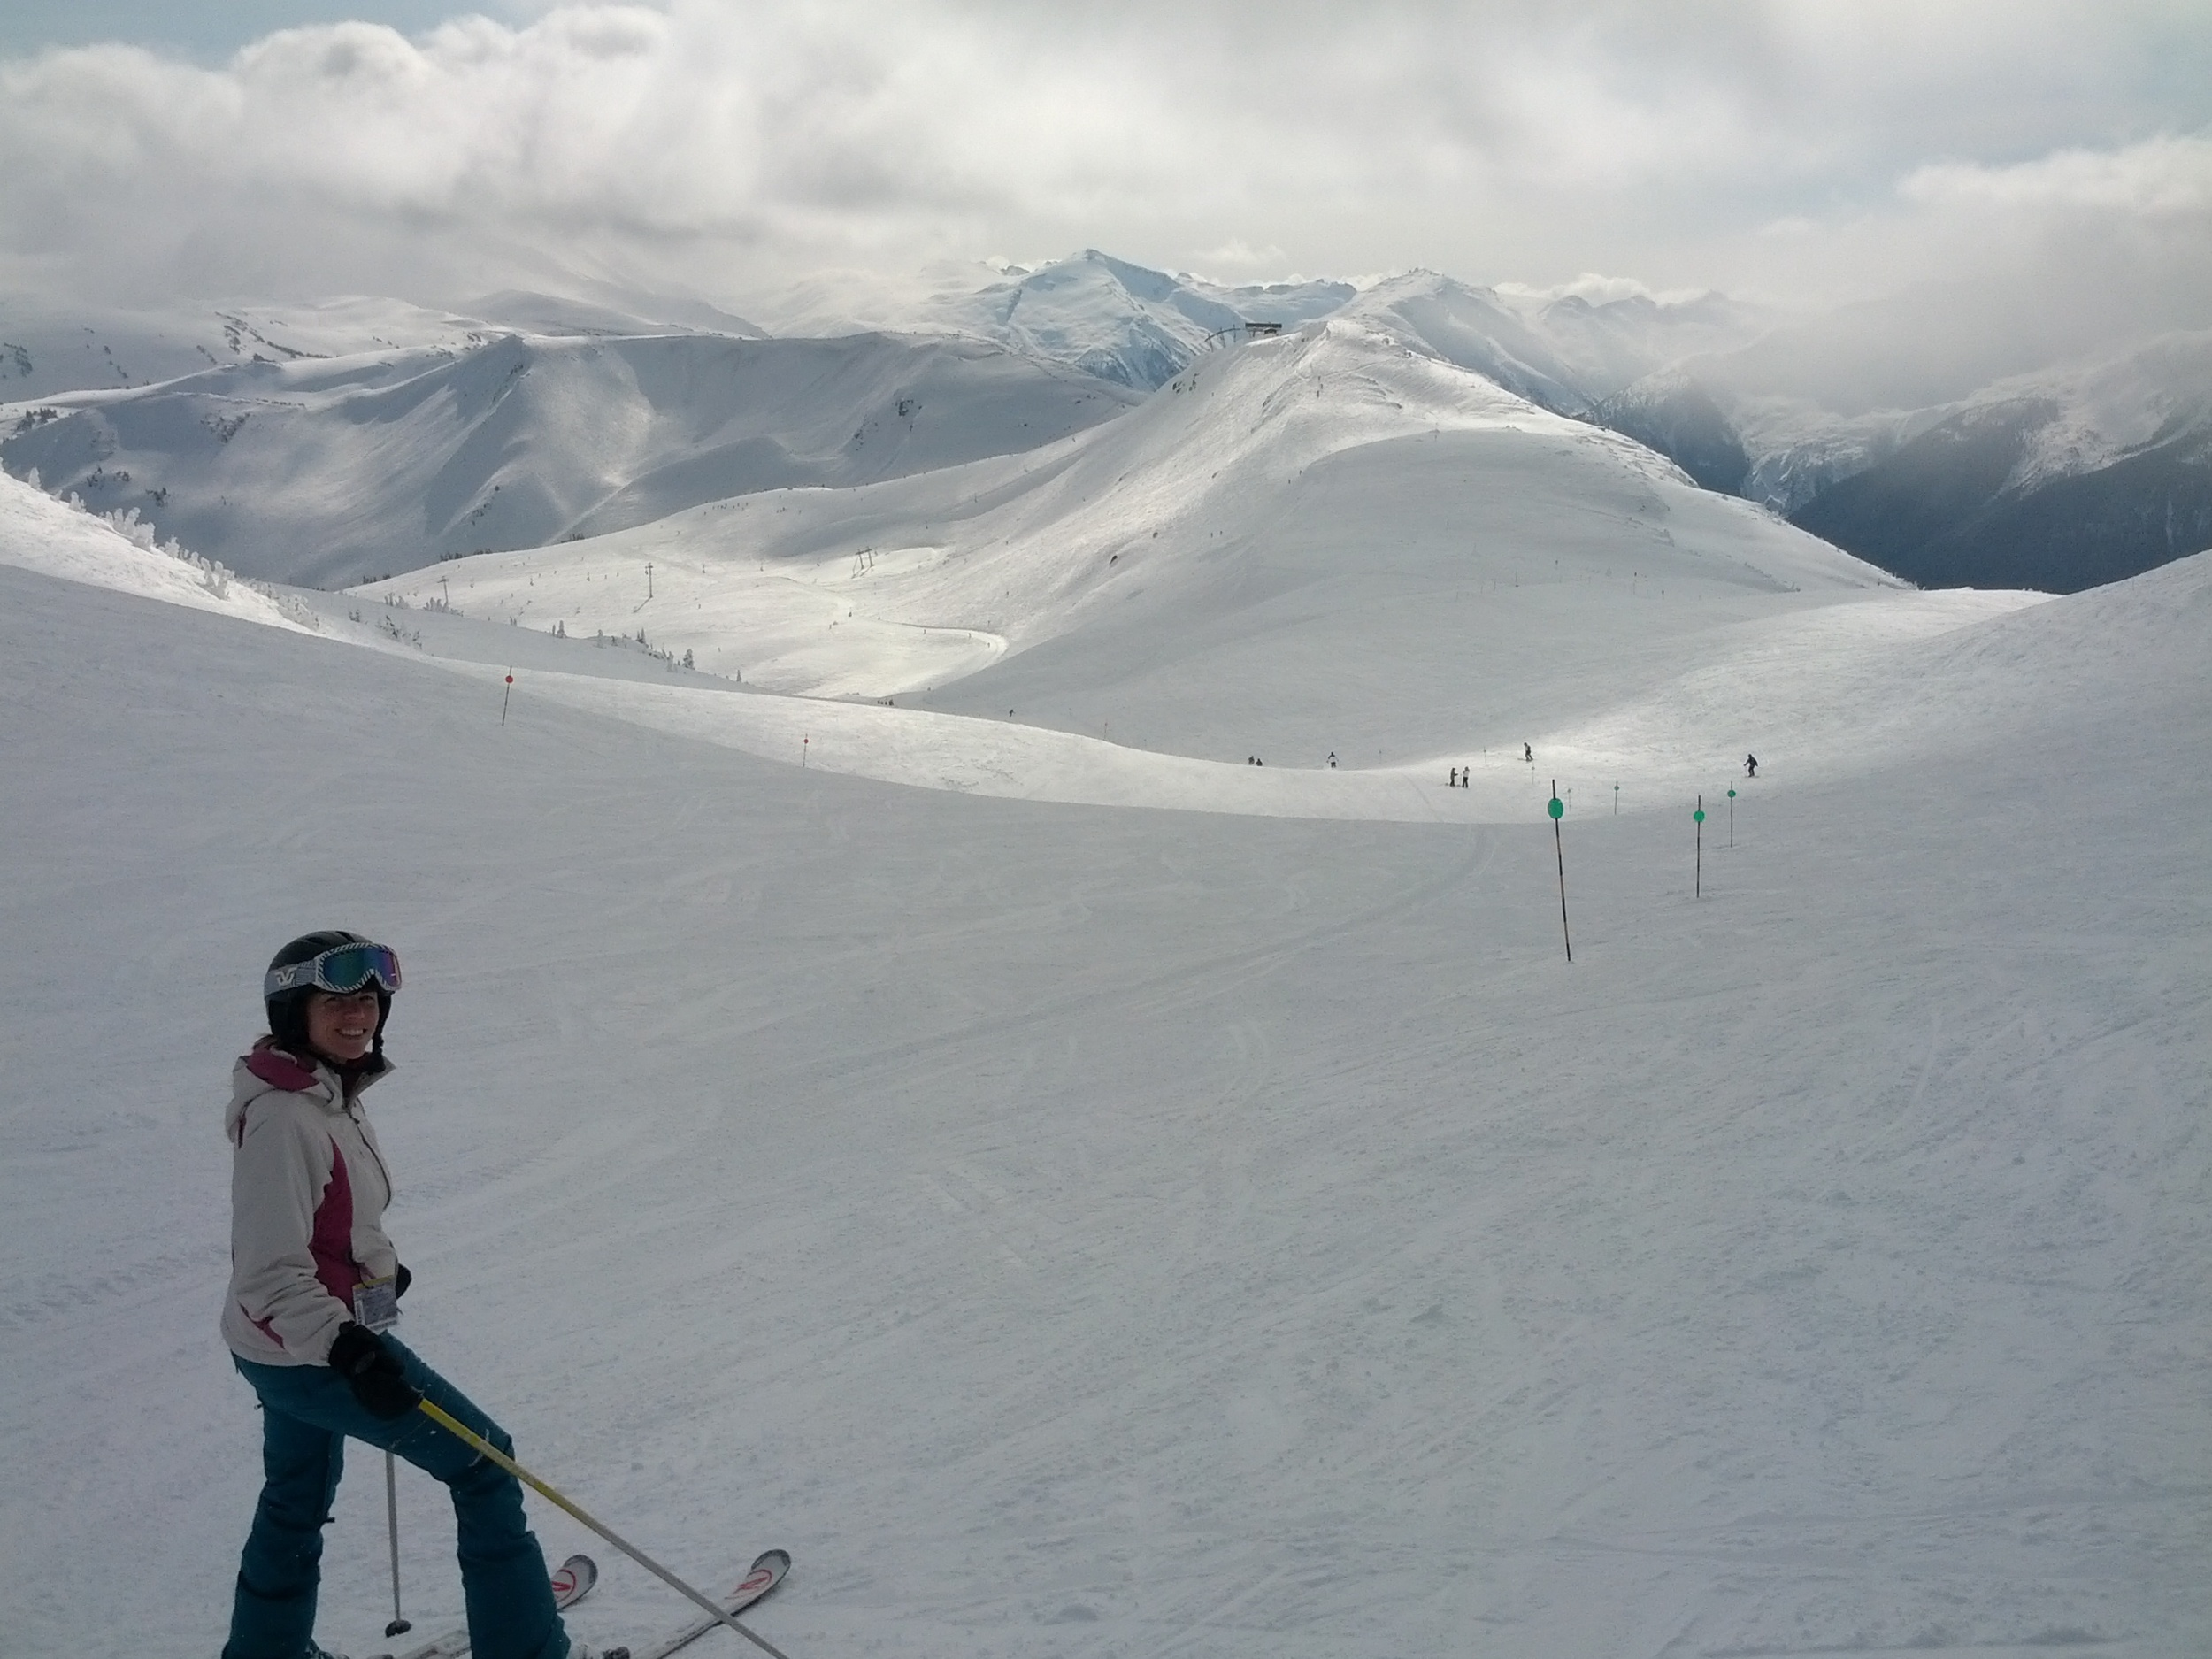 View from Symphony Bowl on Whistler Mountain